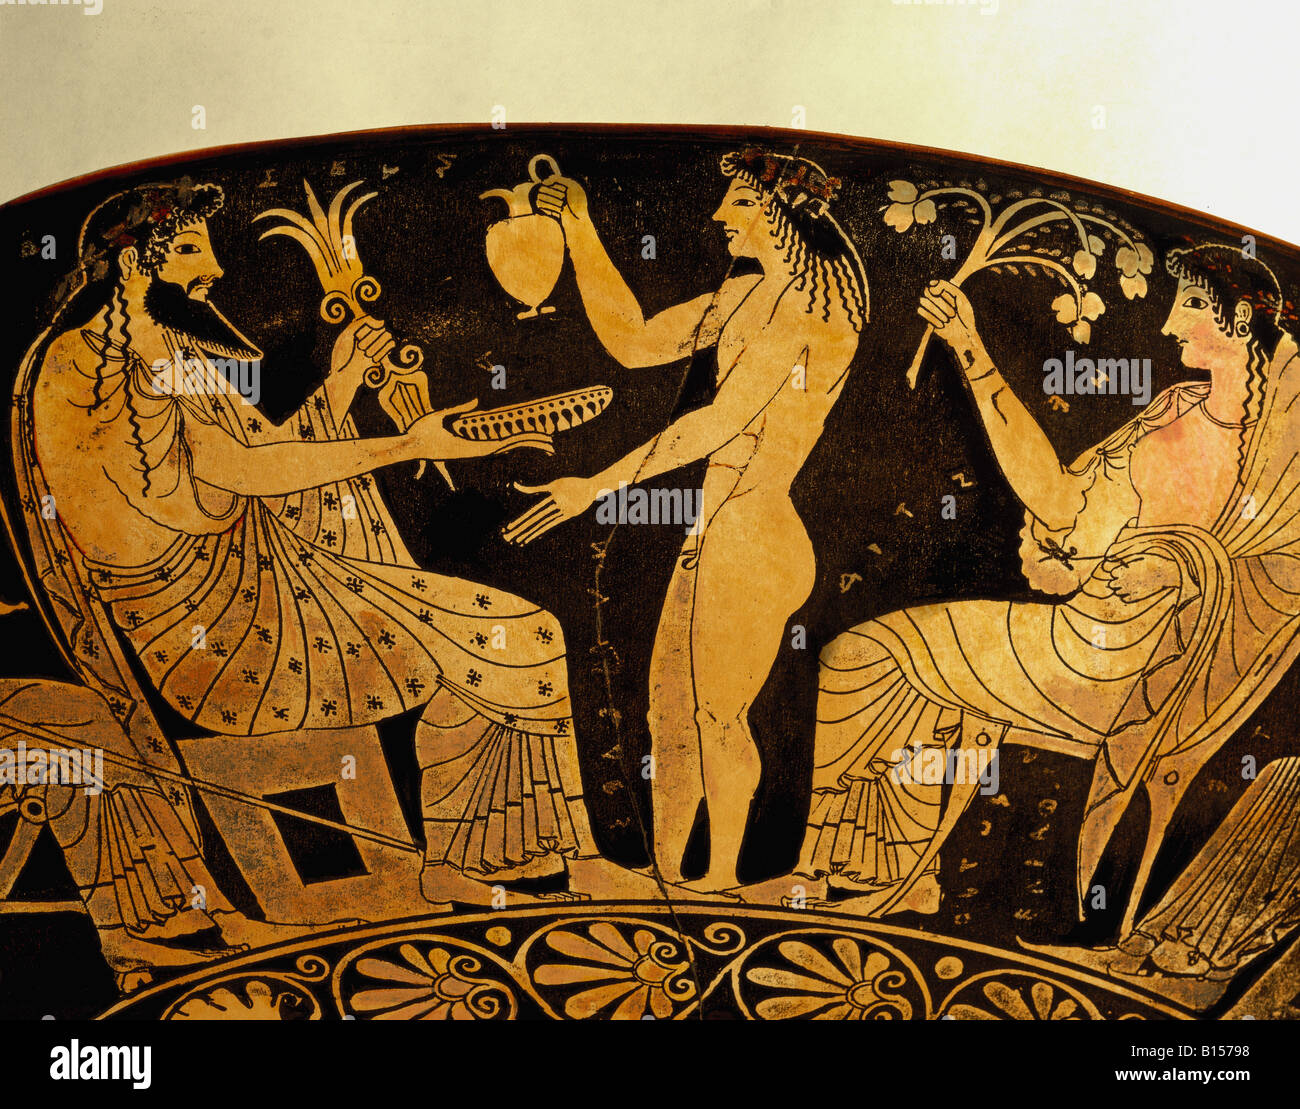 Fine arts ancient world greece vase painting gods zeus and fine arts ancient world greece vase painting gods zeus and hestia with ganymed as cupbearer red figured style drinking cup reviewsmspy